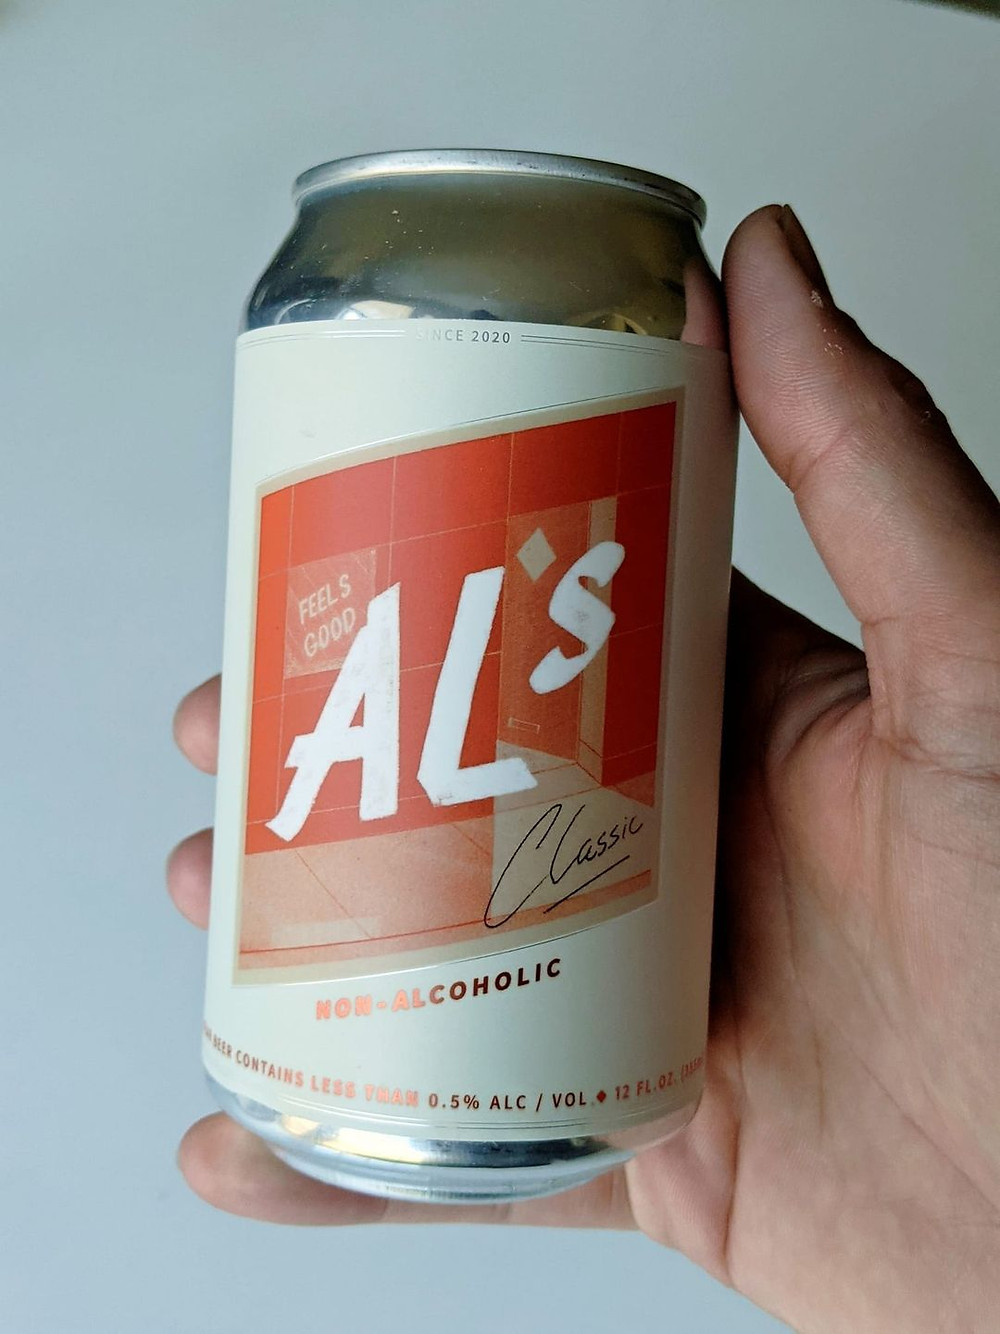 AL's non-alcoholic beer review